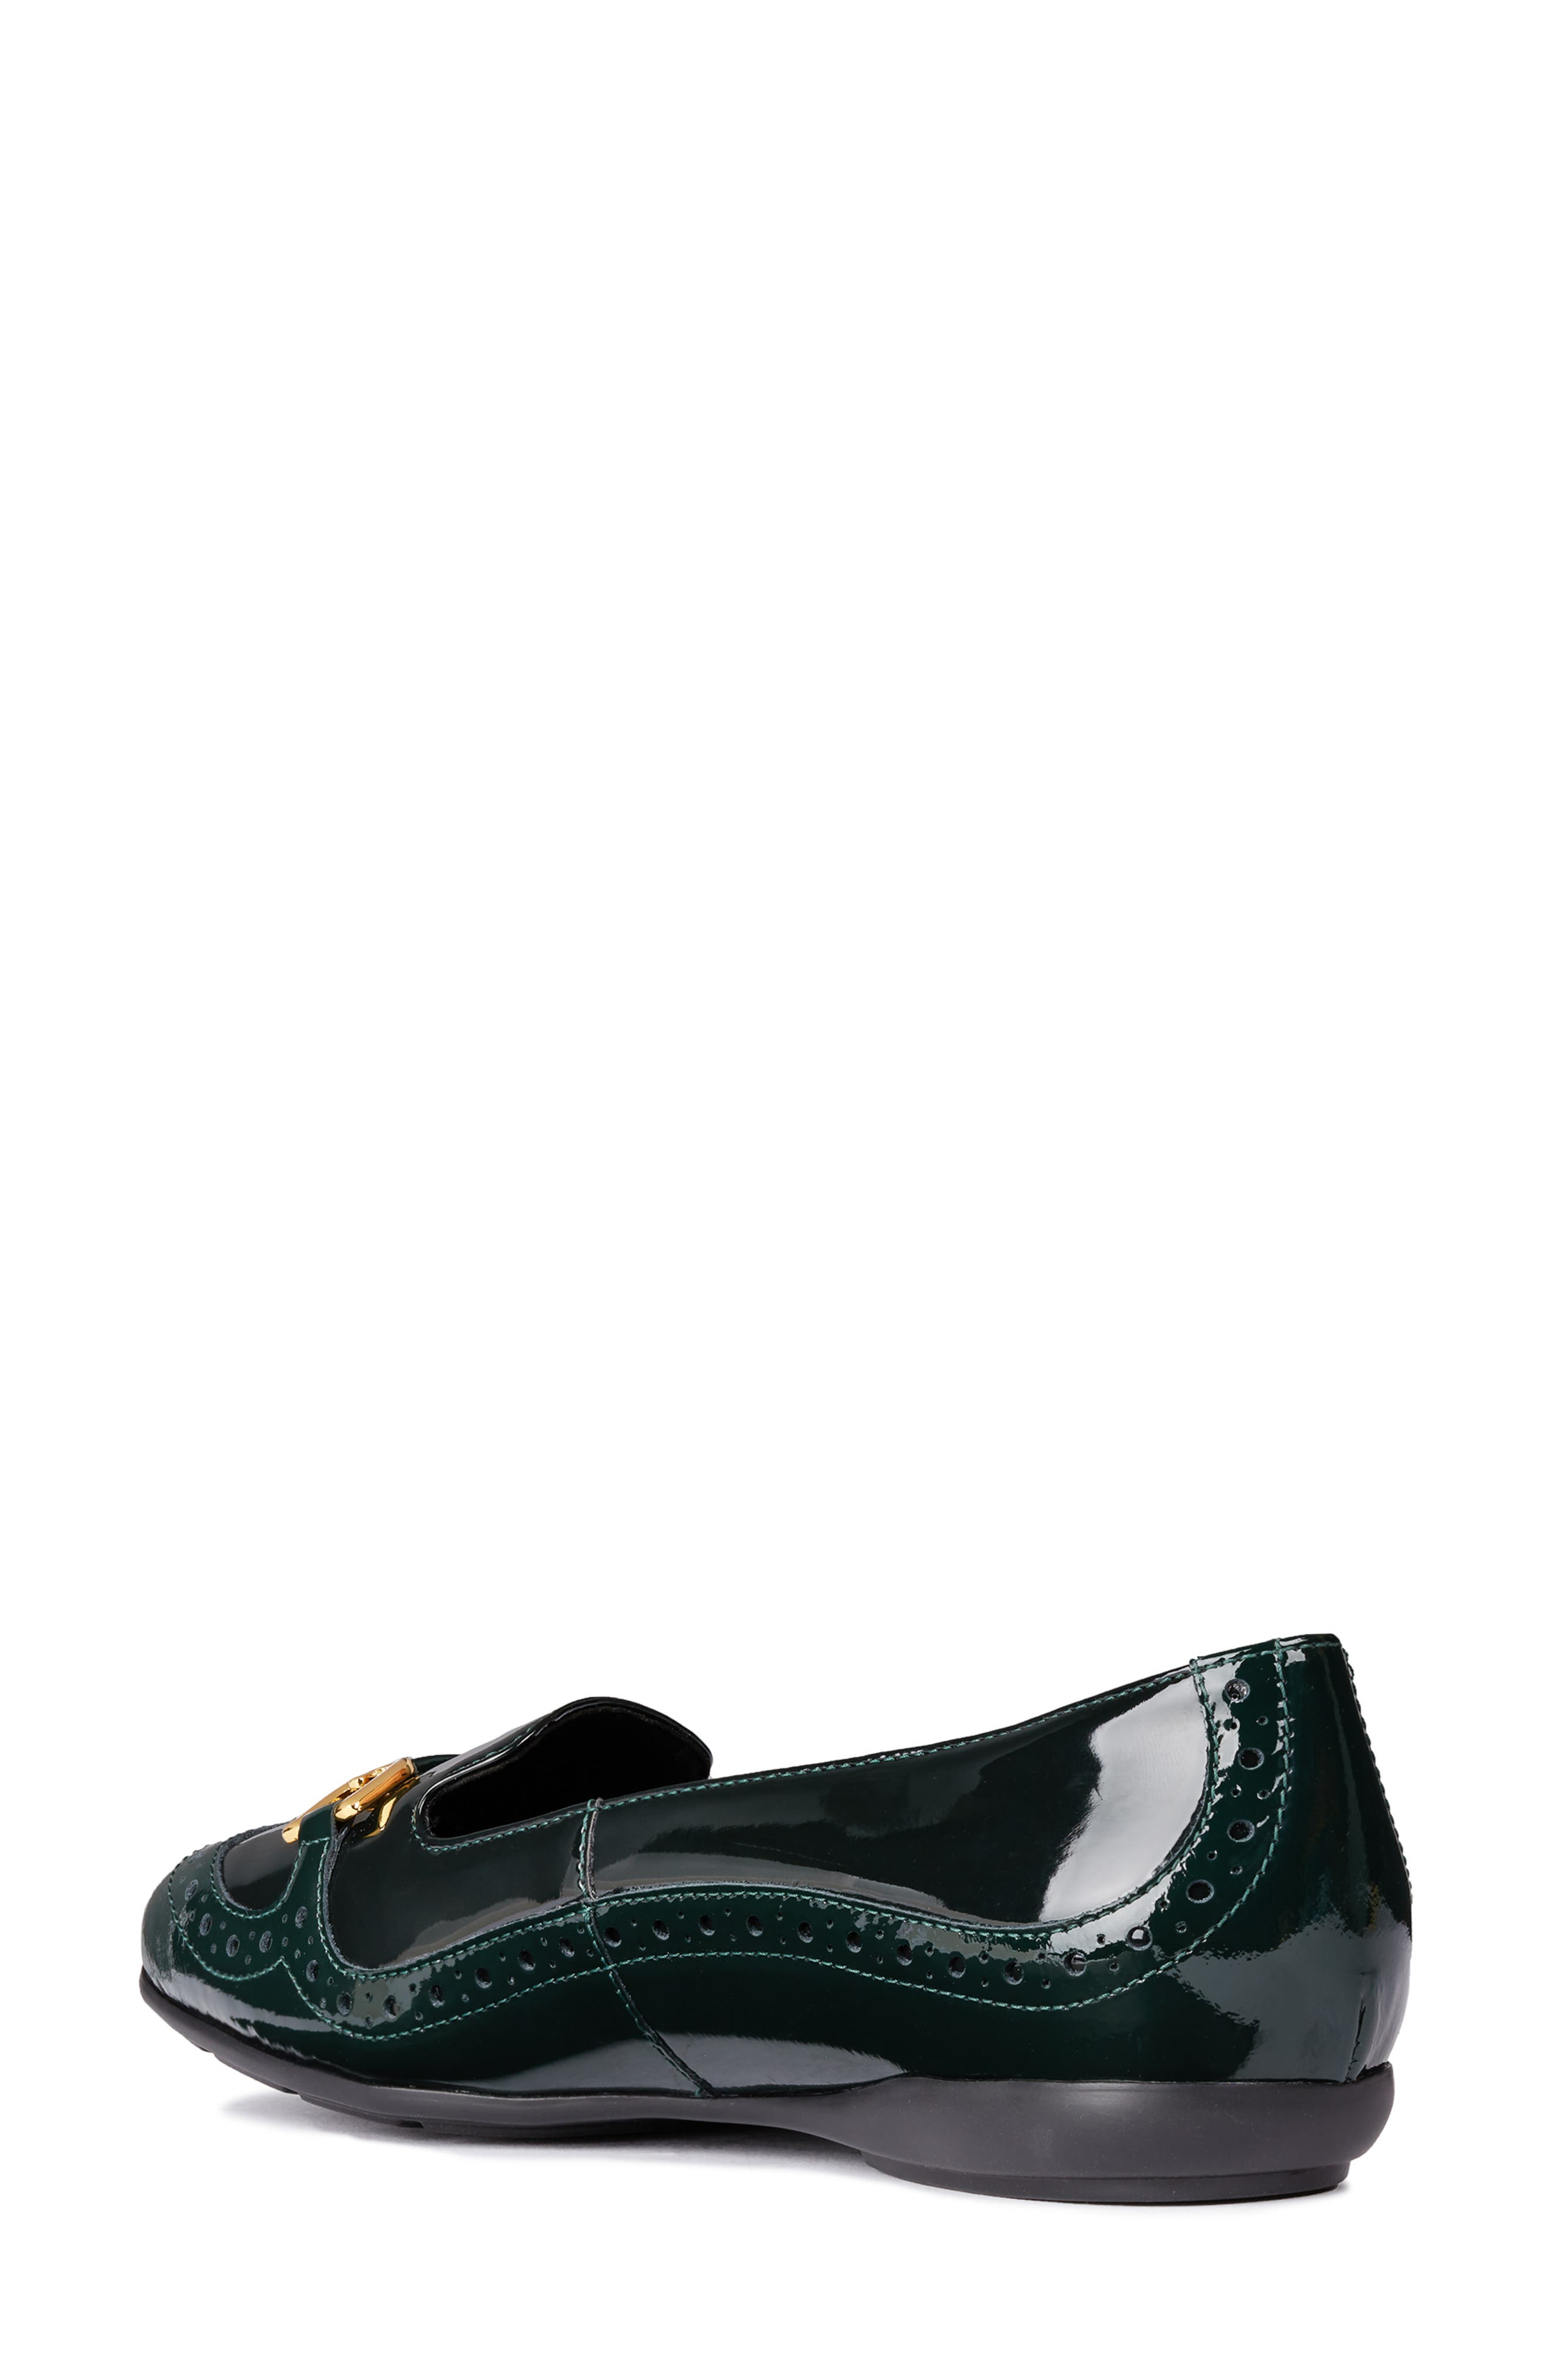 Annytah Loafer,                             Alternate thumbnail 2, color,                             FOREST FAUX PATENT LEATHER